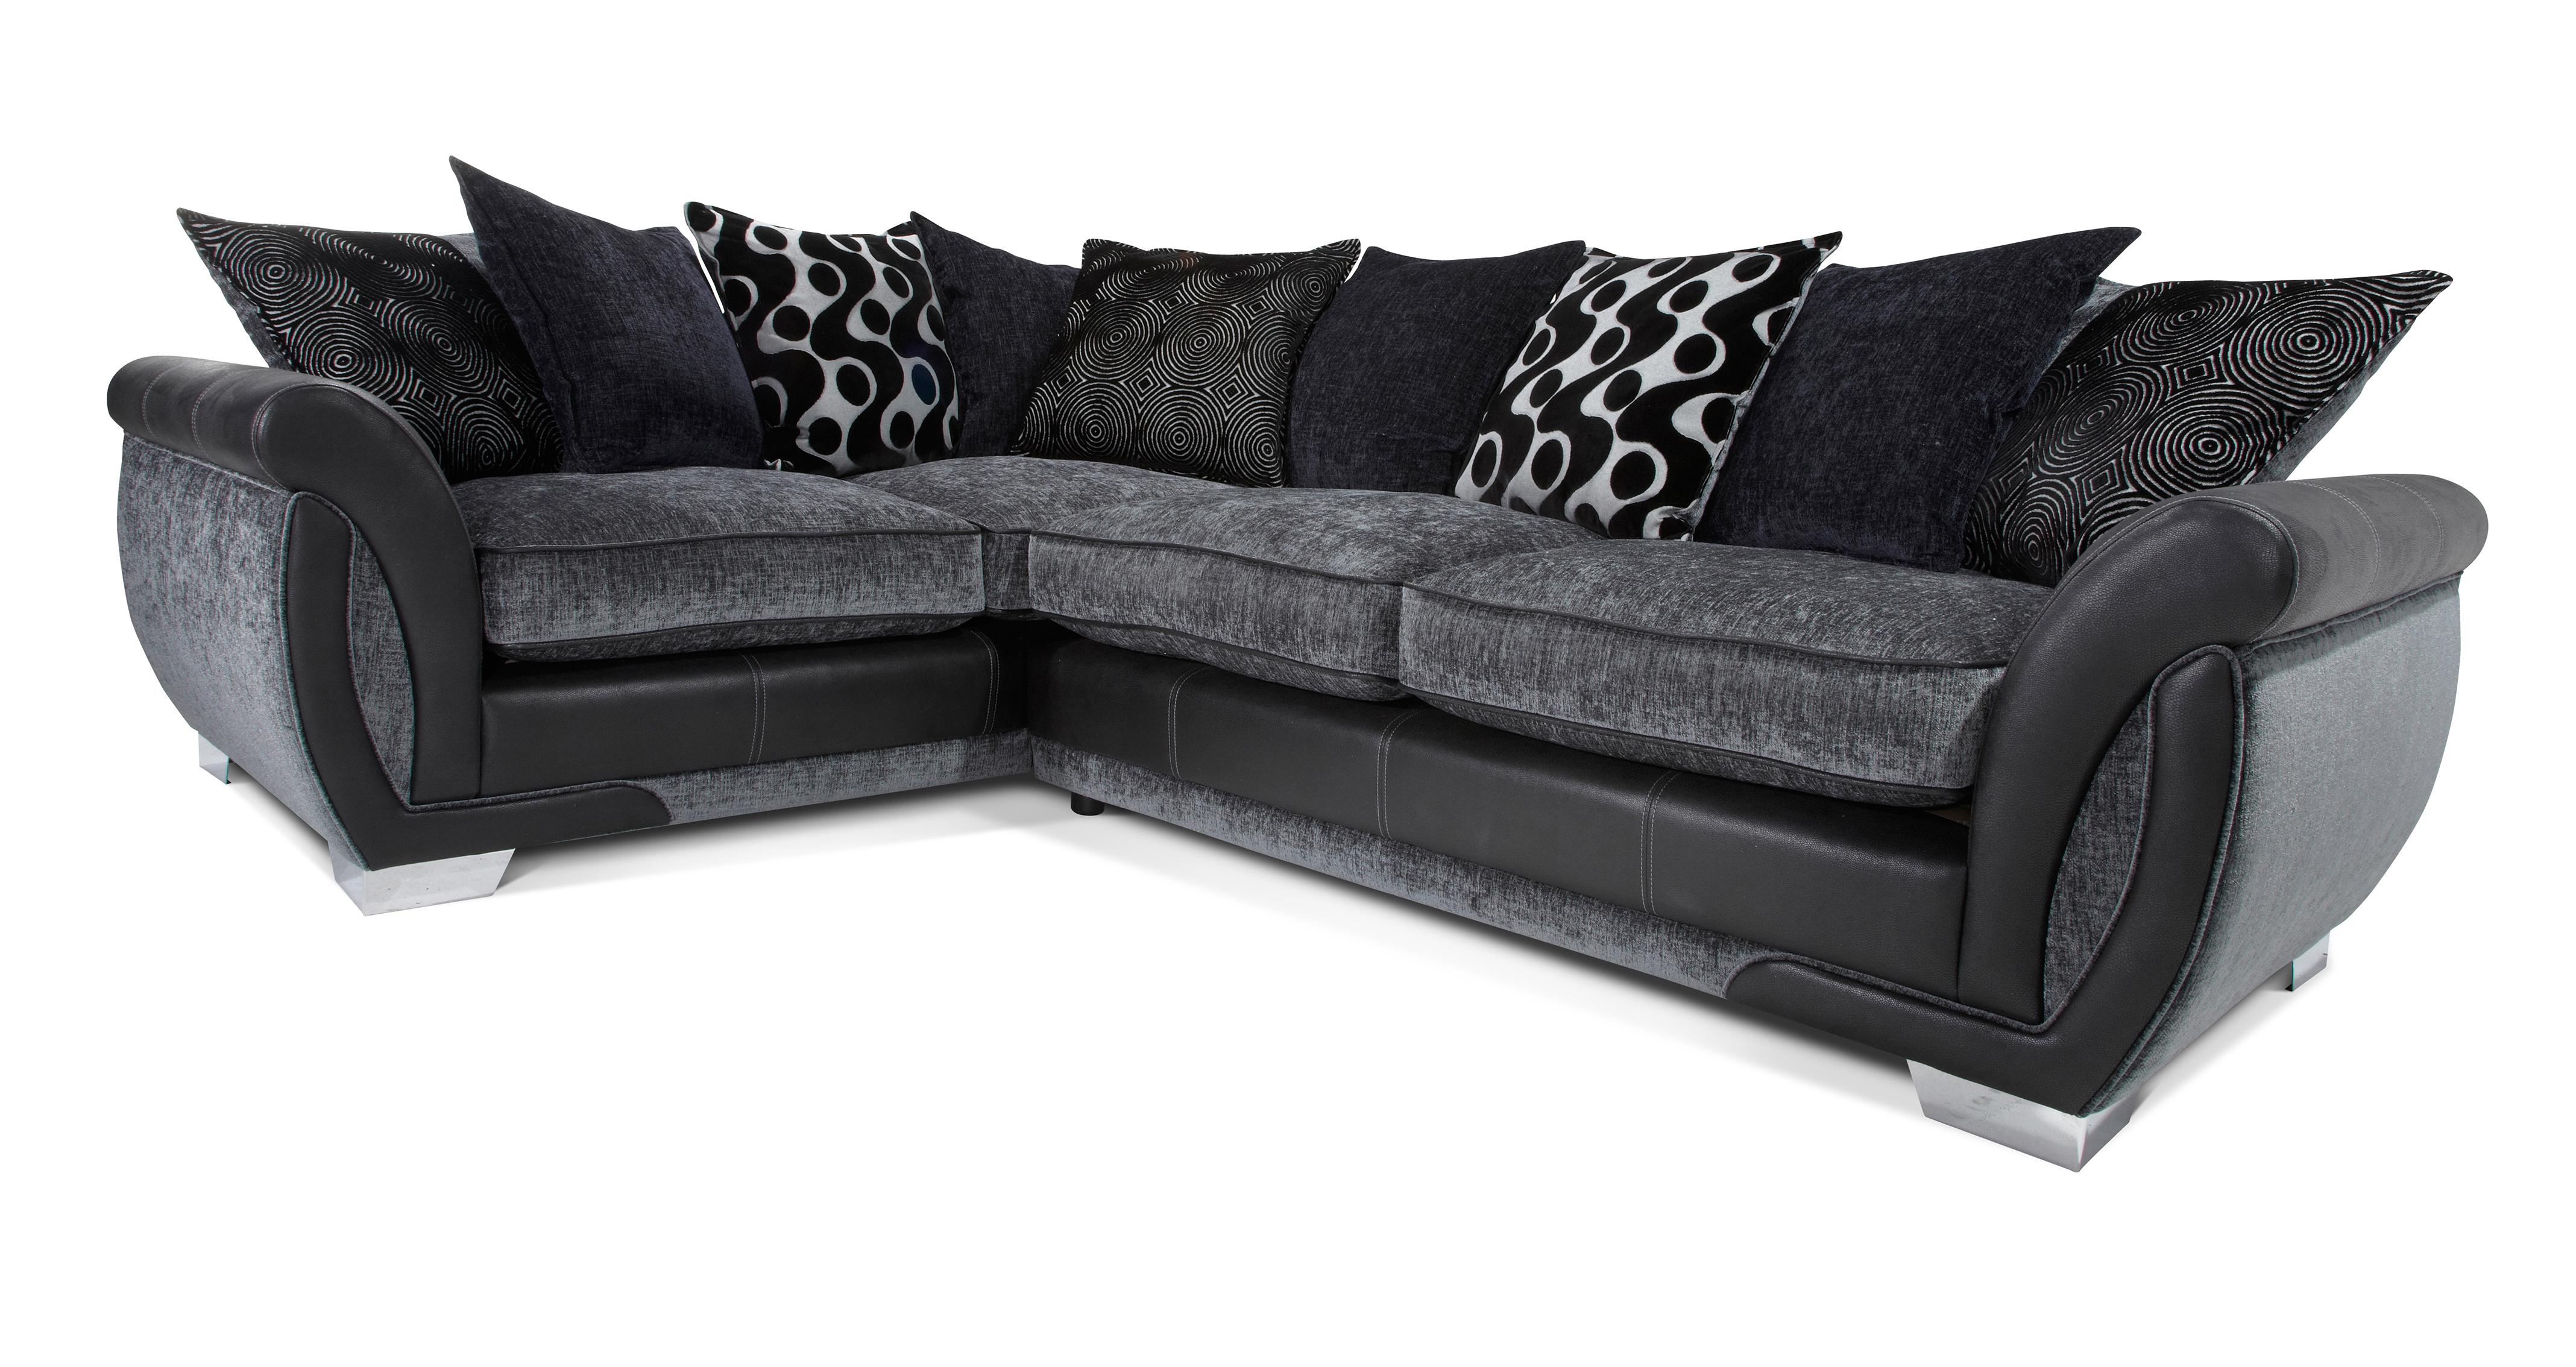 corner sofa dfs martinez 5 in 1 bed lowest price shannon charcoal fabric right hand facing